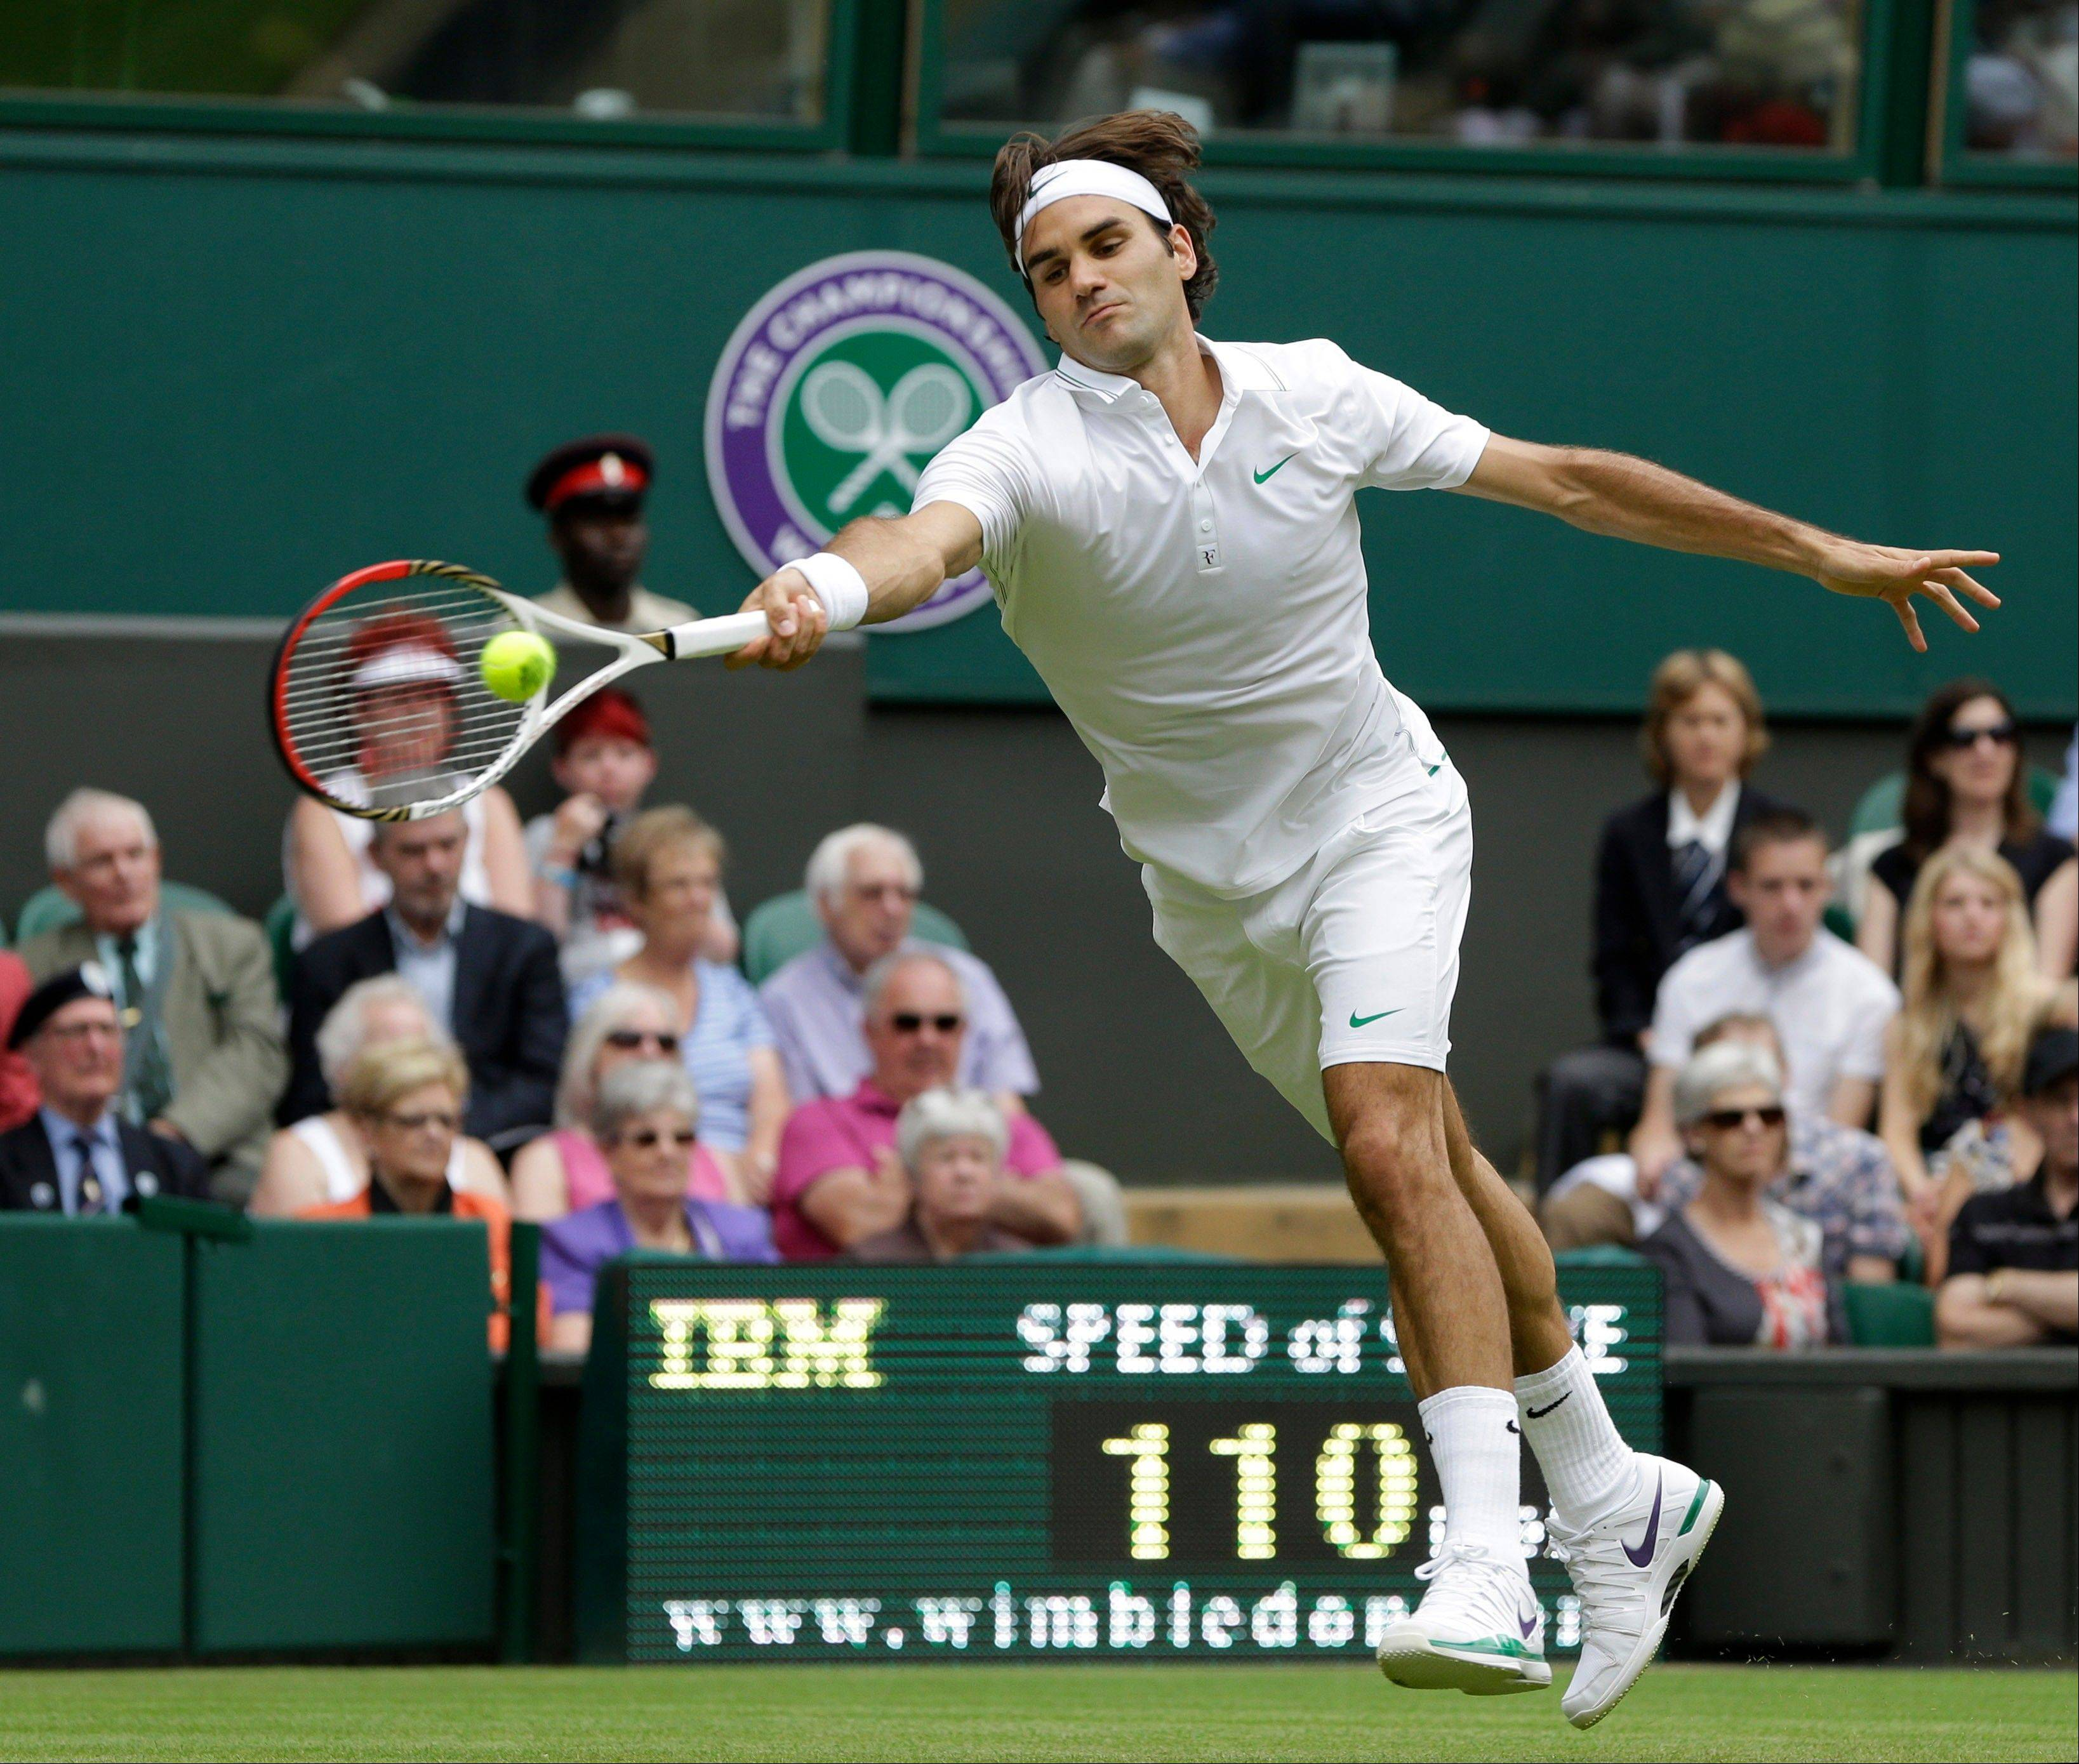 Roger Federer returns a shot to Fabio Fognini Wednesday during a second round men's singles match at the All England Lawn Tennis Championships at Wimbledon, England.